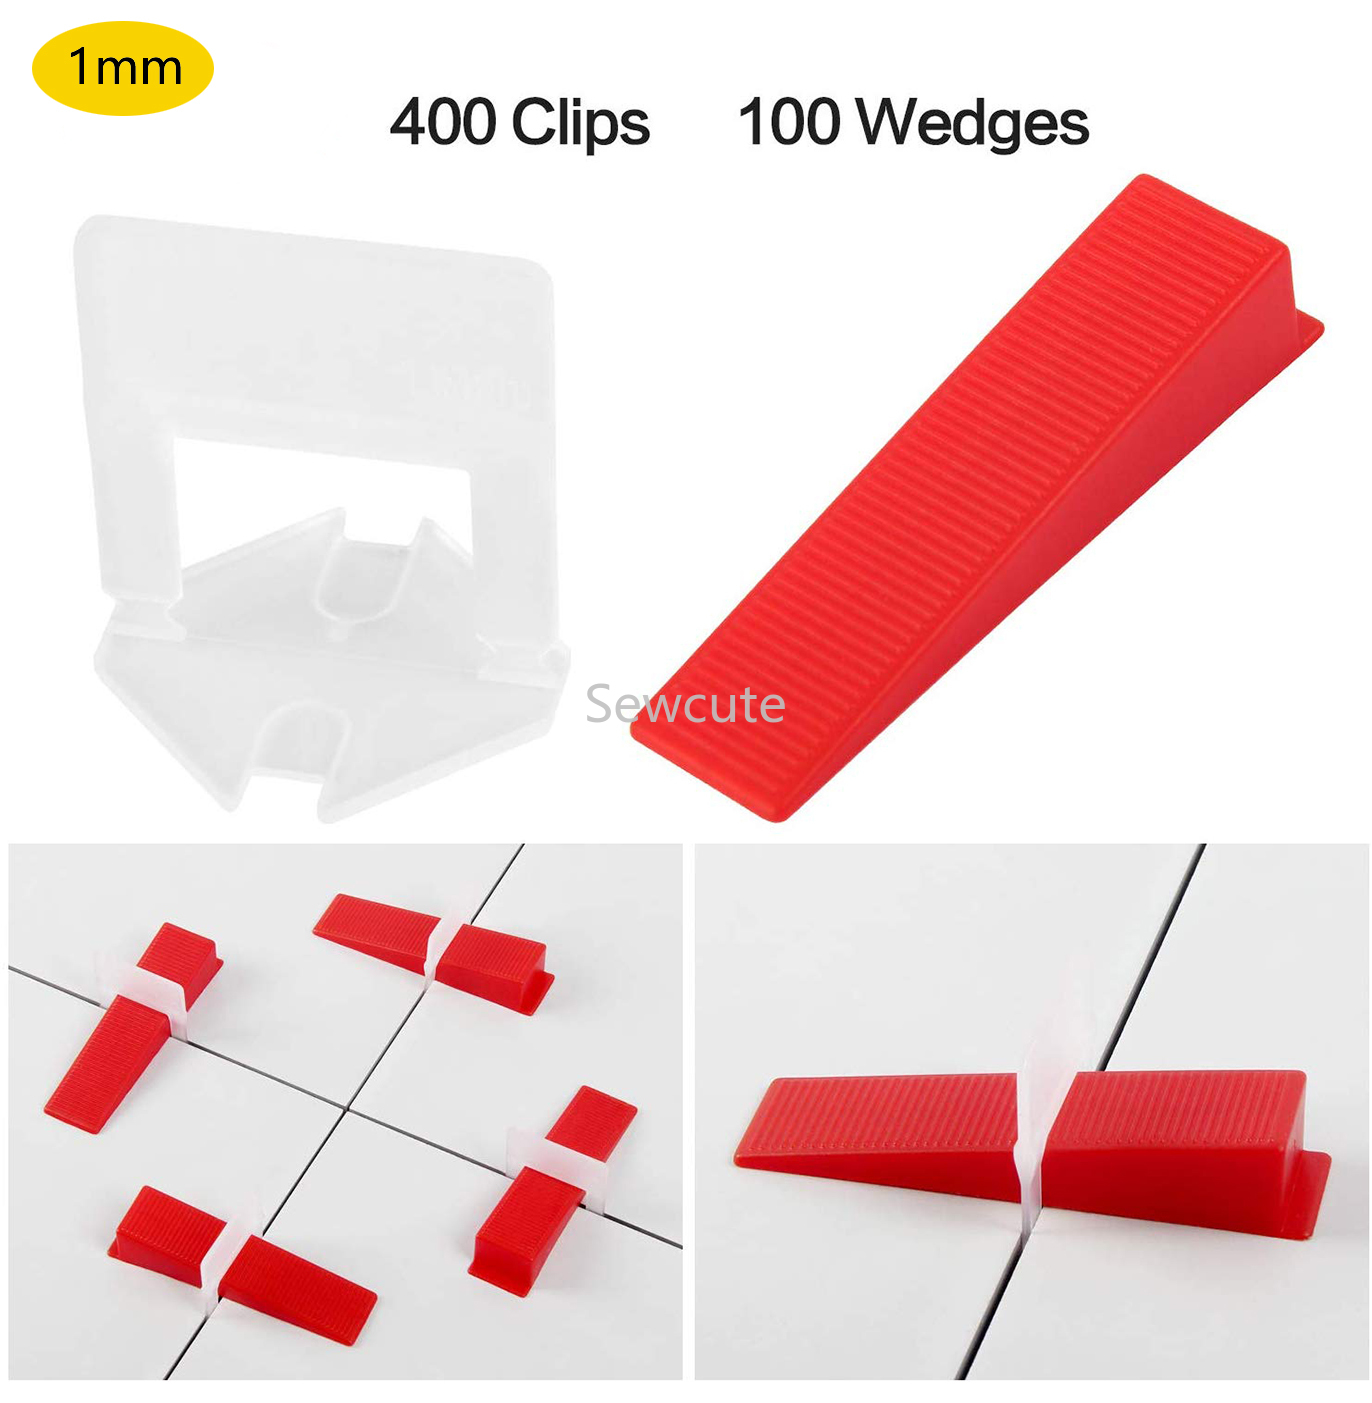 1mm Tile Leveling System 400pcs Clips + 100pcs Reusable Wedges Self Leveling Plastic Tile SpacersT Lock For Floor Wall Ceramics